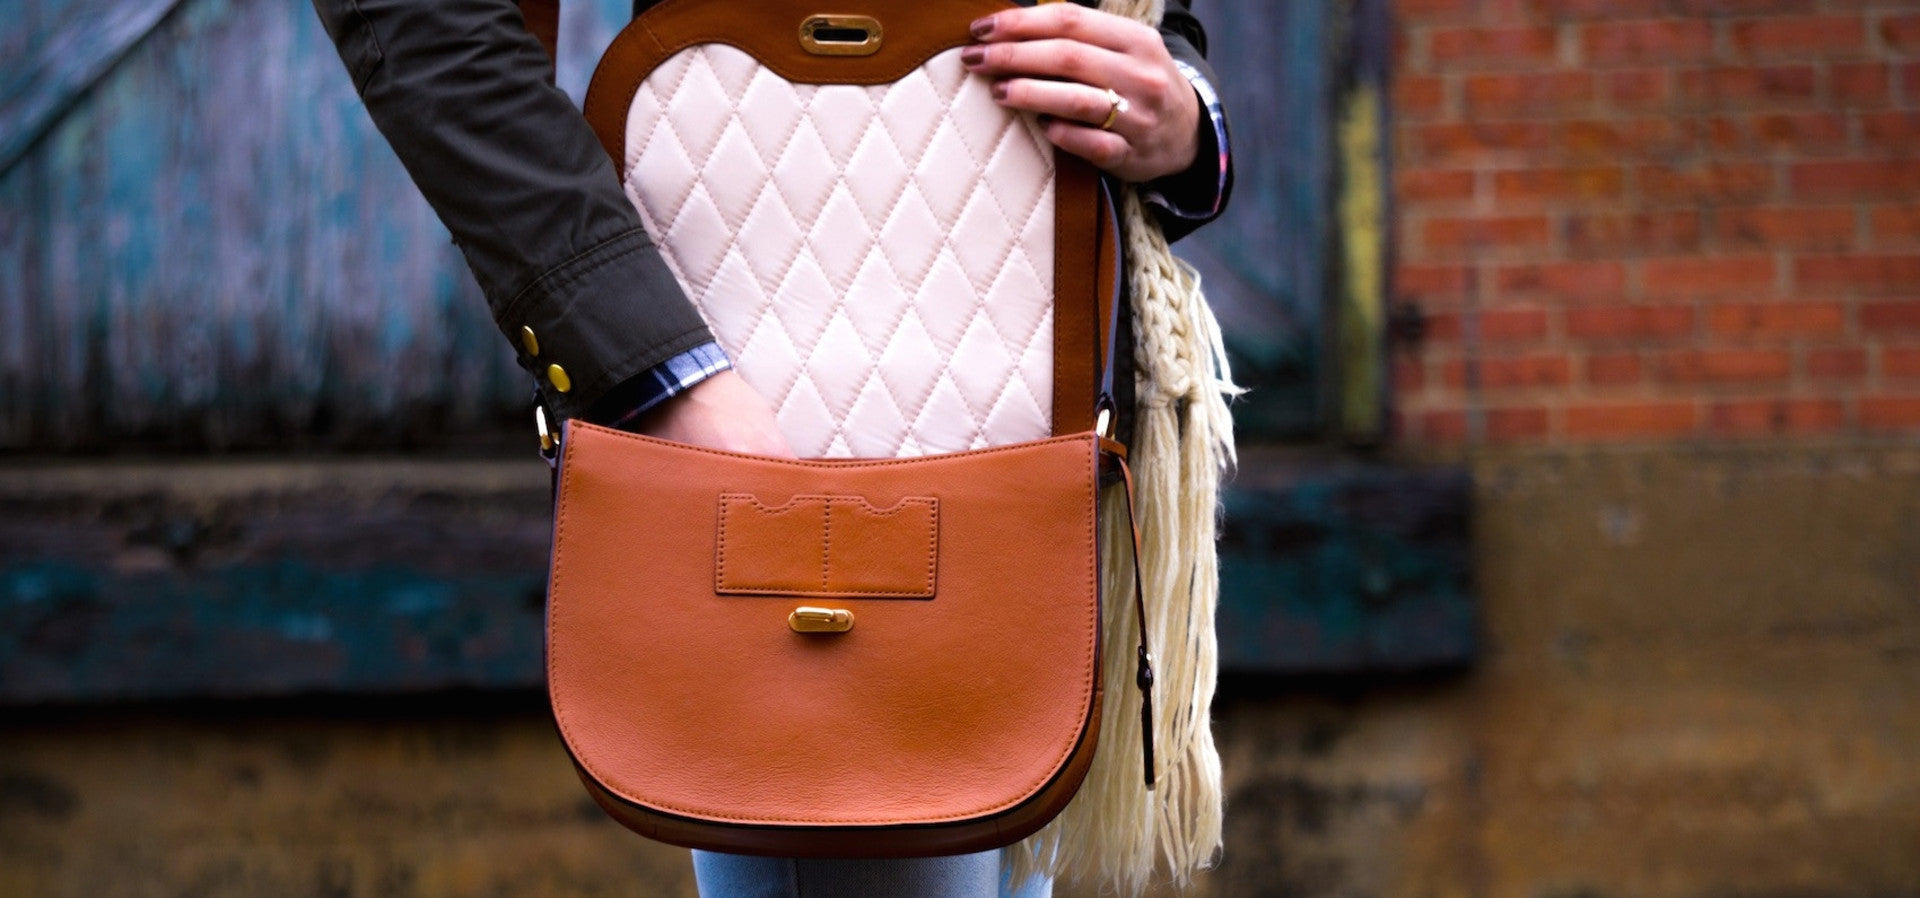 Women's Premium Leather Goods, Purity Leather Goods